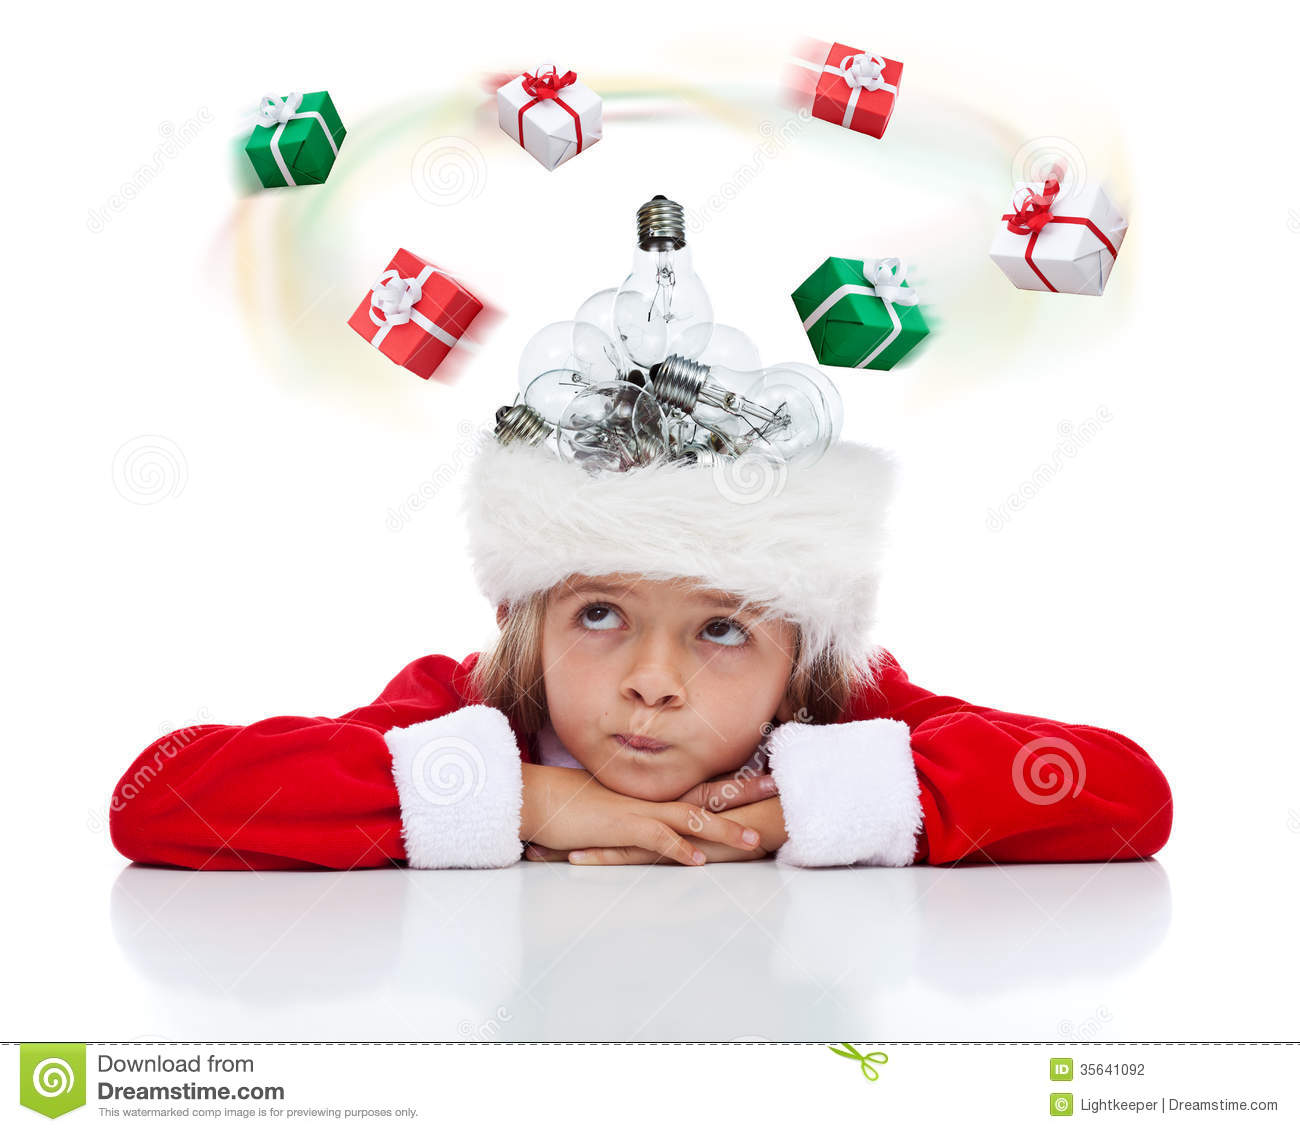 Need A Christmas Gift Idea ? Stock Photo - Image of concept, claus ...